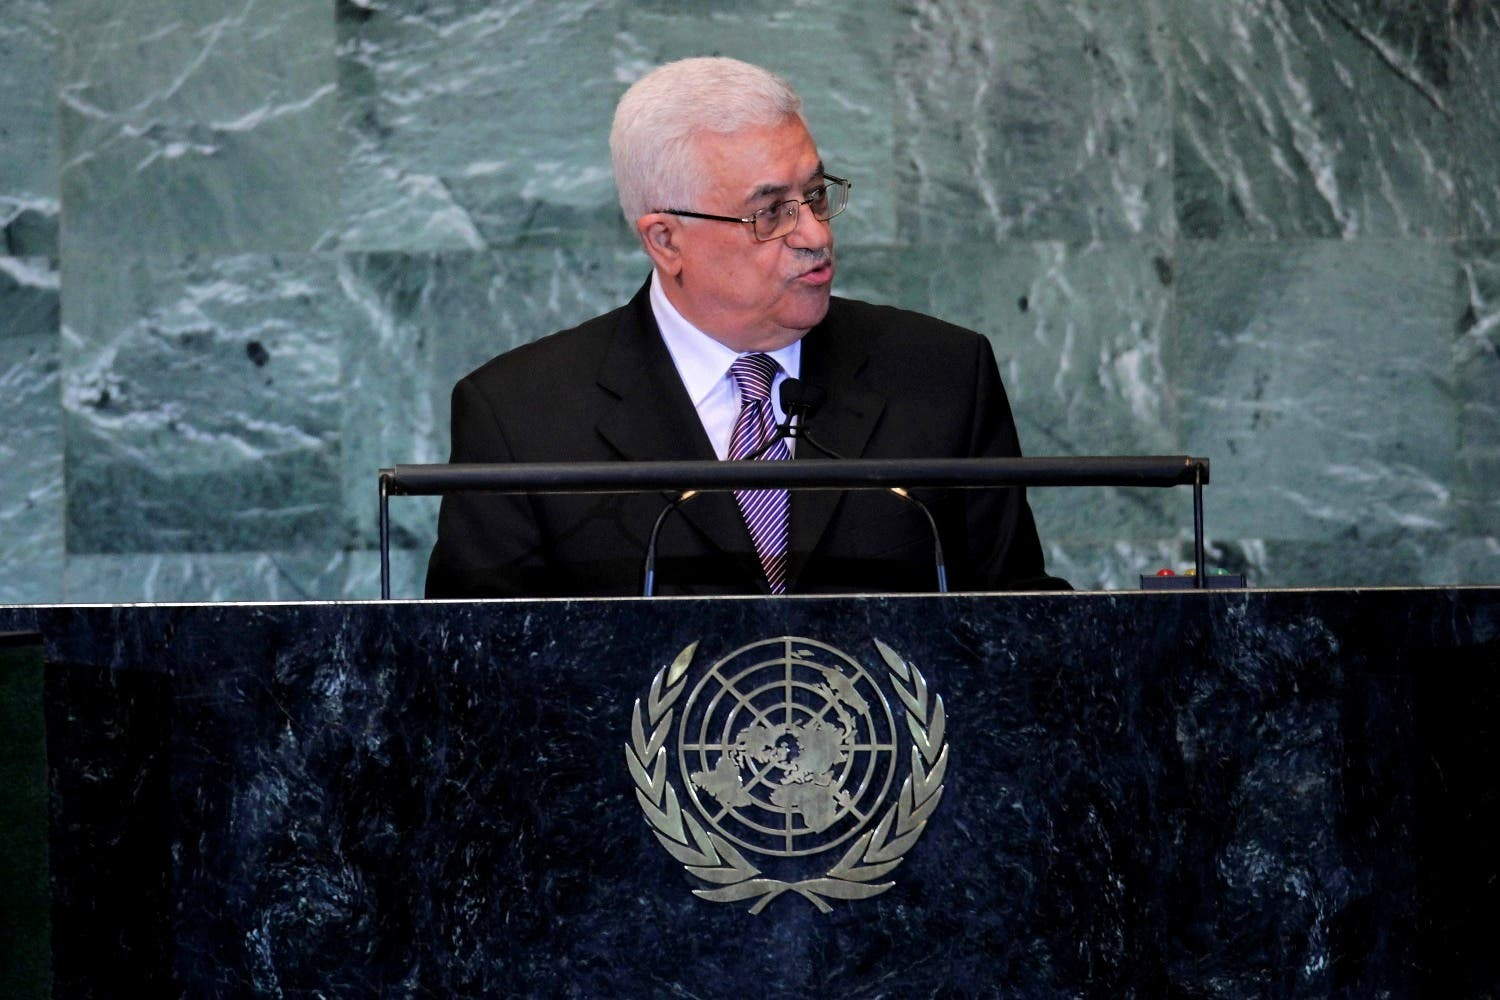 Mahmoud Abbas, President of the Palestinian National Authority (PNA), receives a standing ovation at the UN after giving his speech for statehood.